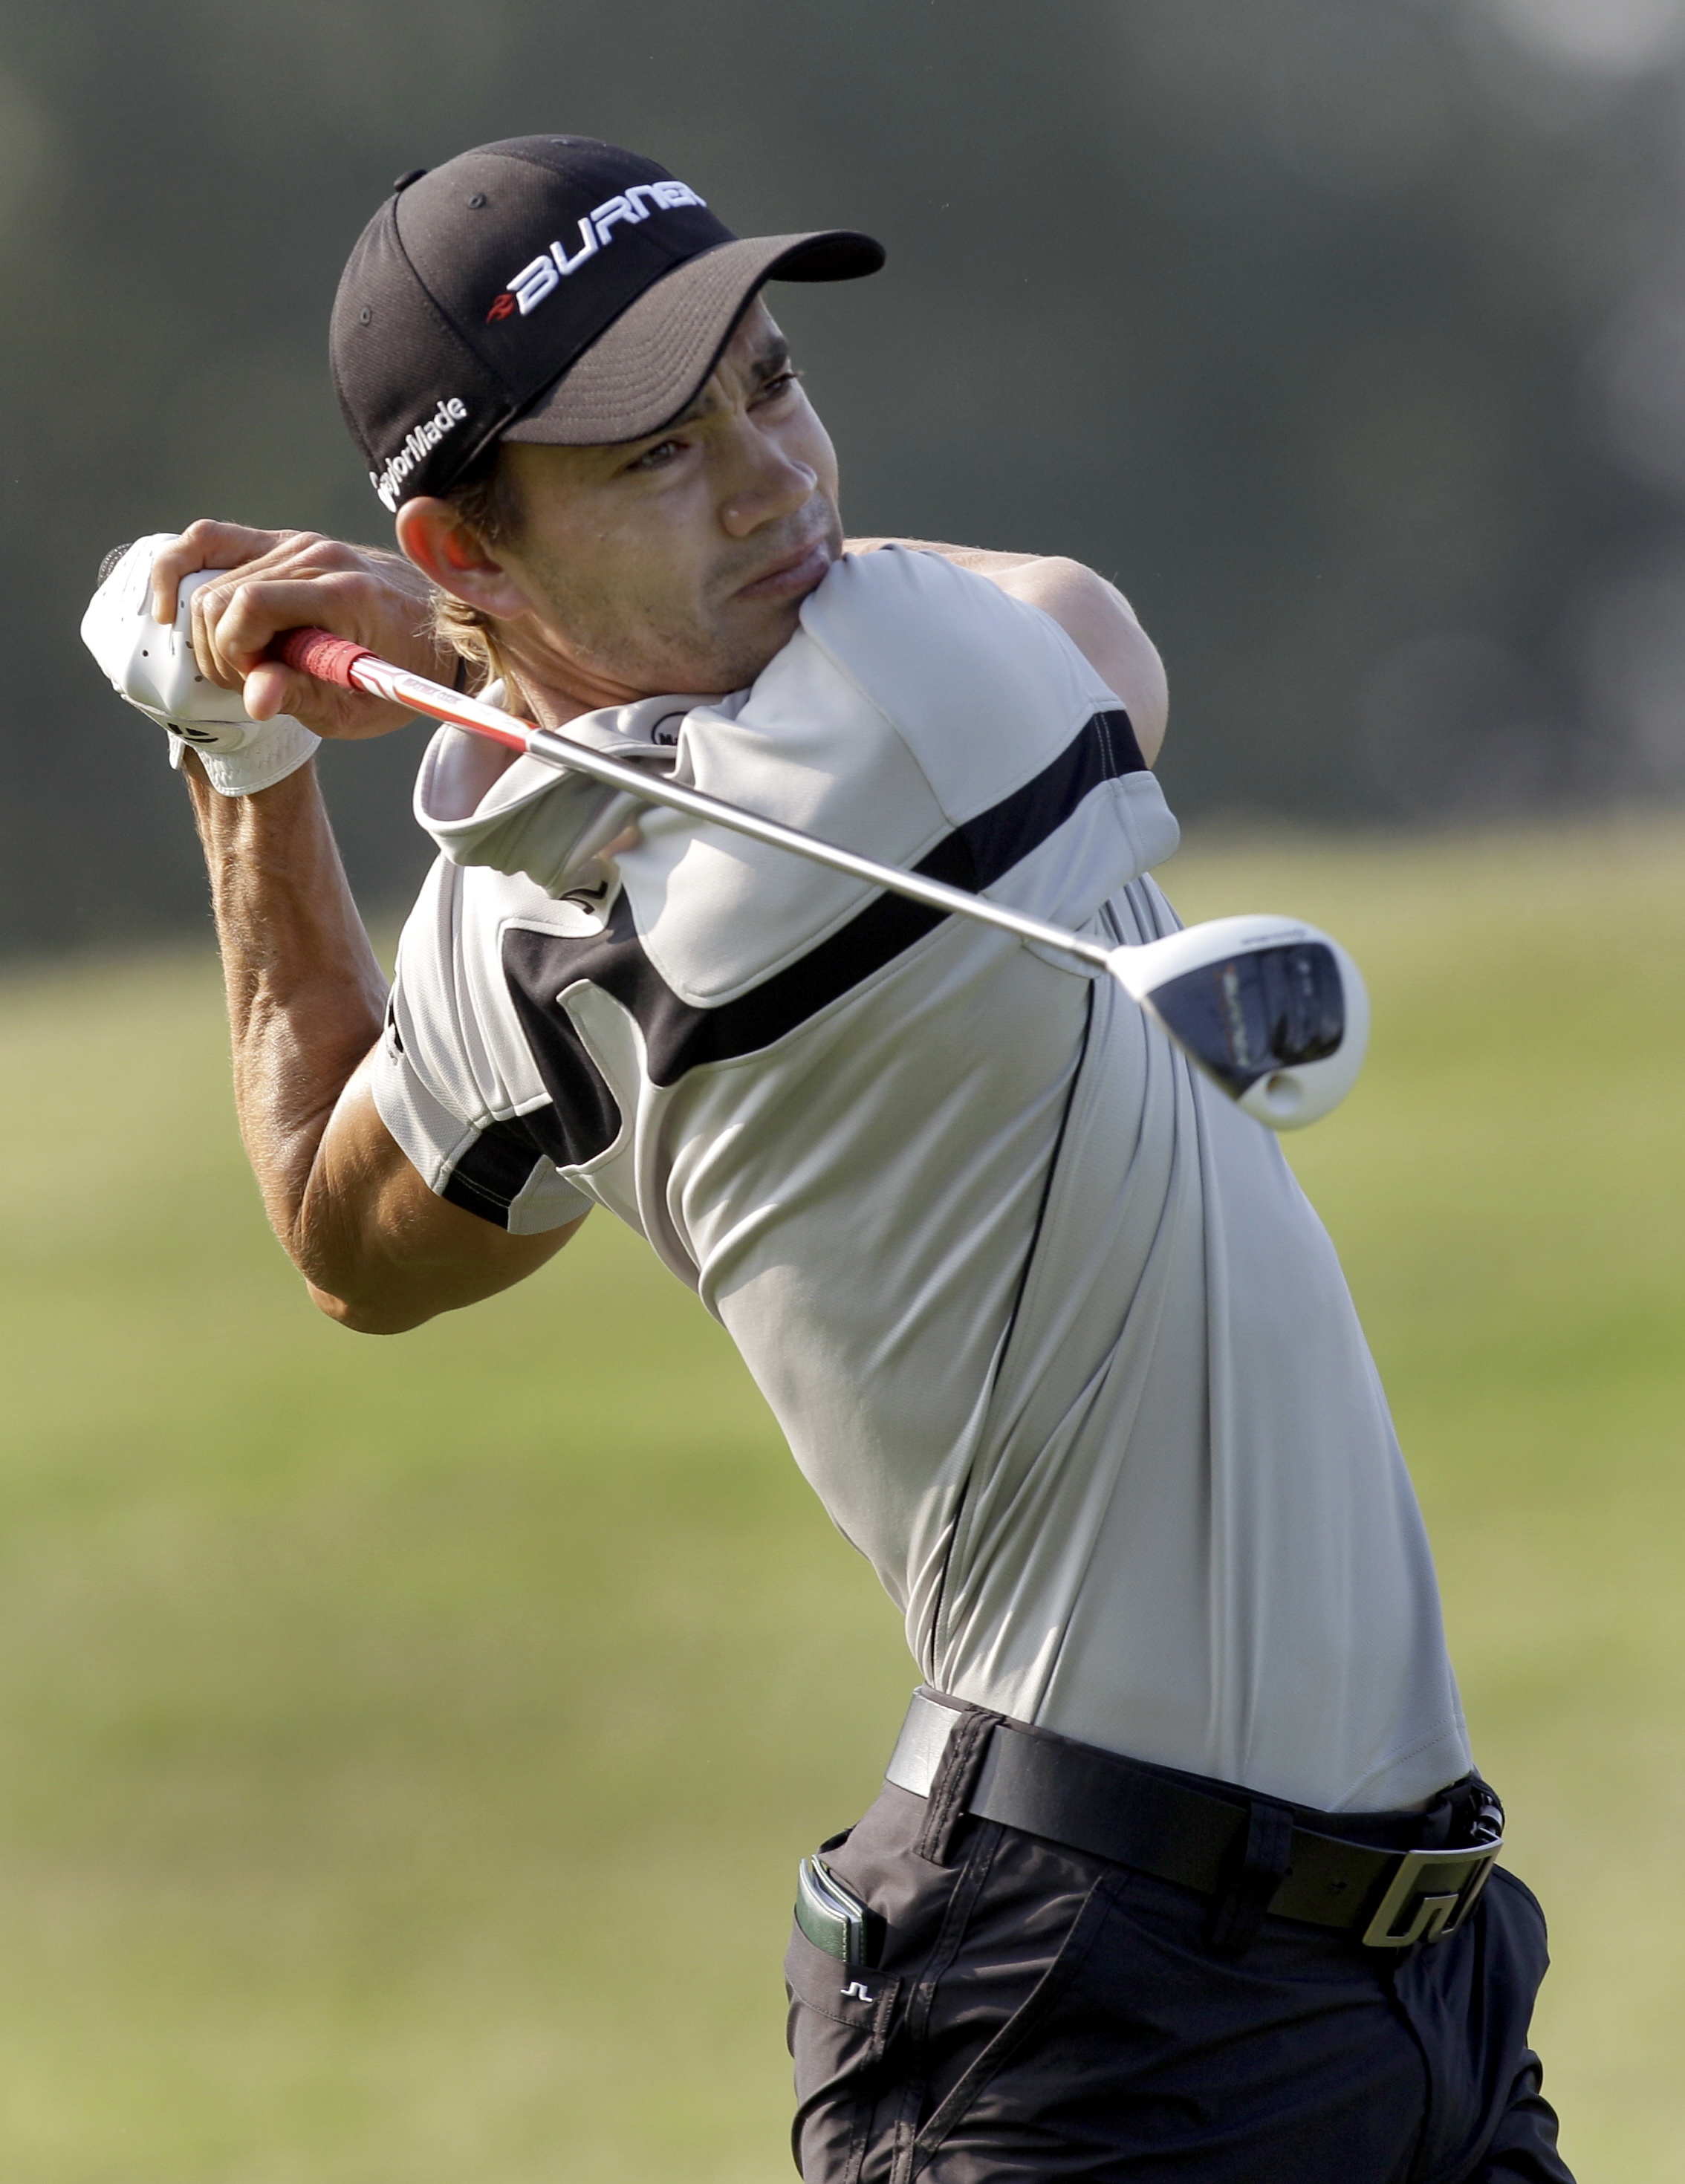 Camilo Villegas, of Colombia, tees off on the second hole during the first round of the St. Jude Classic golf tournament Thursday, June 9, 2011, in Memphis, Tenn.